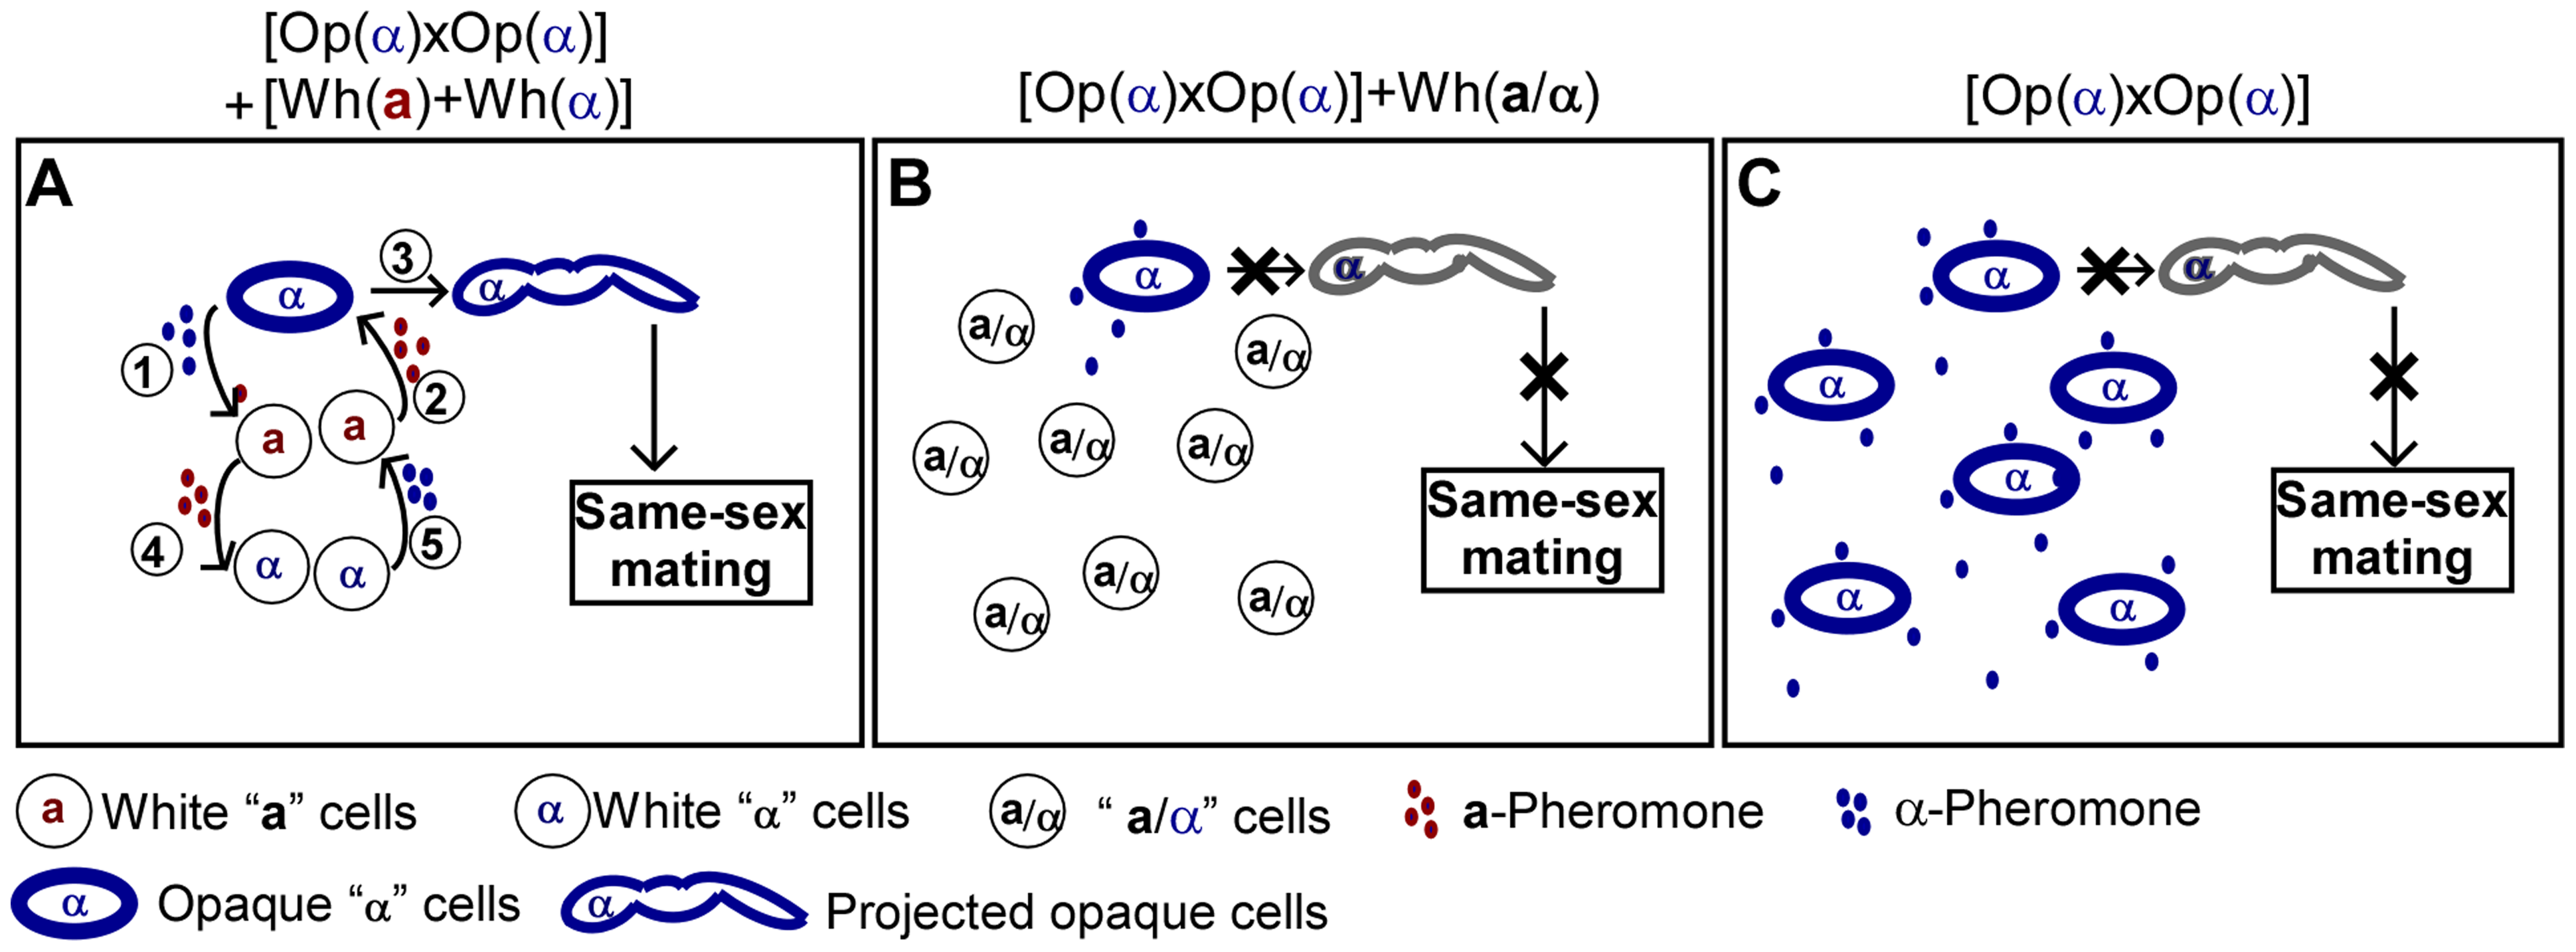 Schematic models depicting that white cells facilitate same-sex mating of opaque cells.